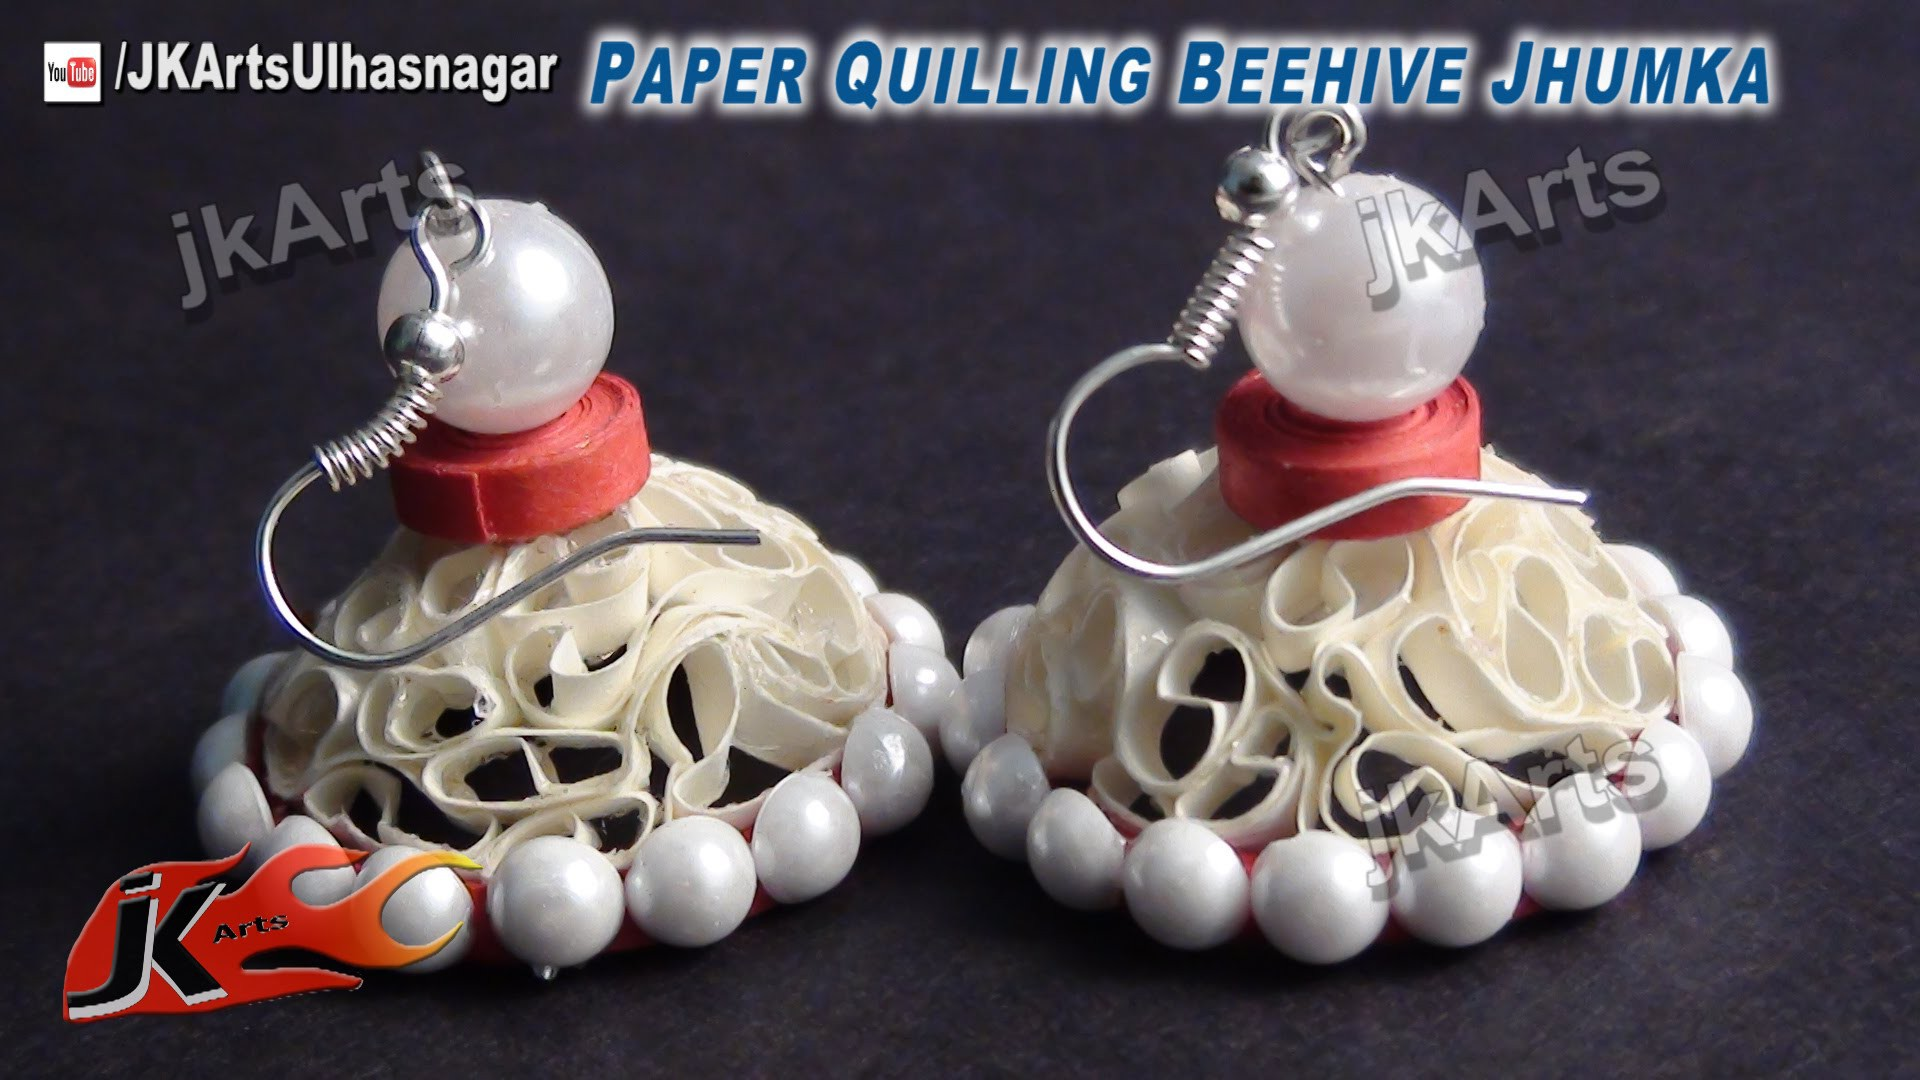 DIY How to make Paper Quilling Jhumka  Beehive - JK Arts 414